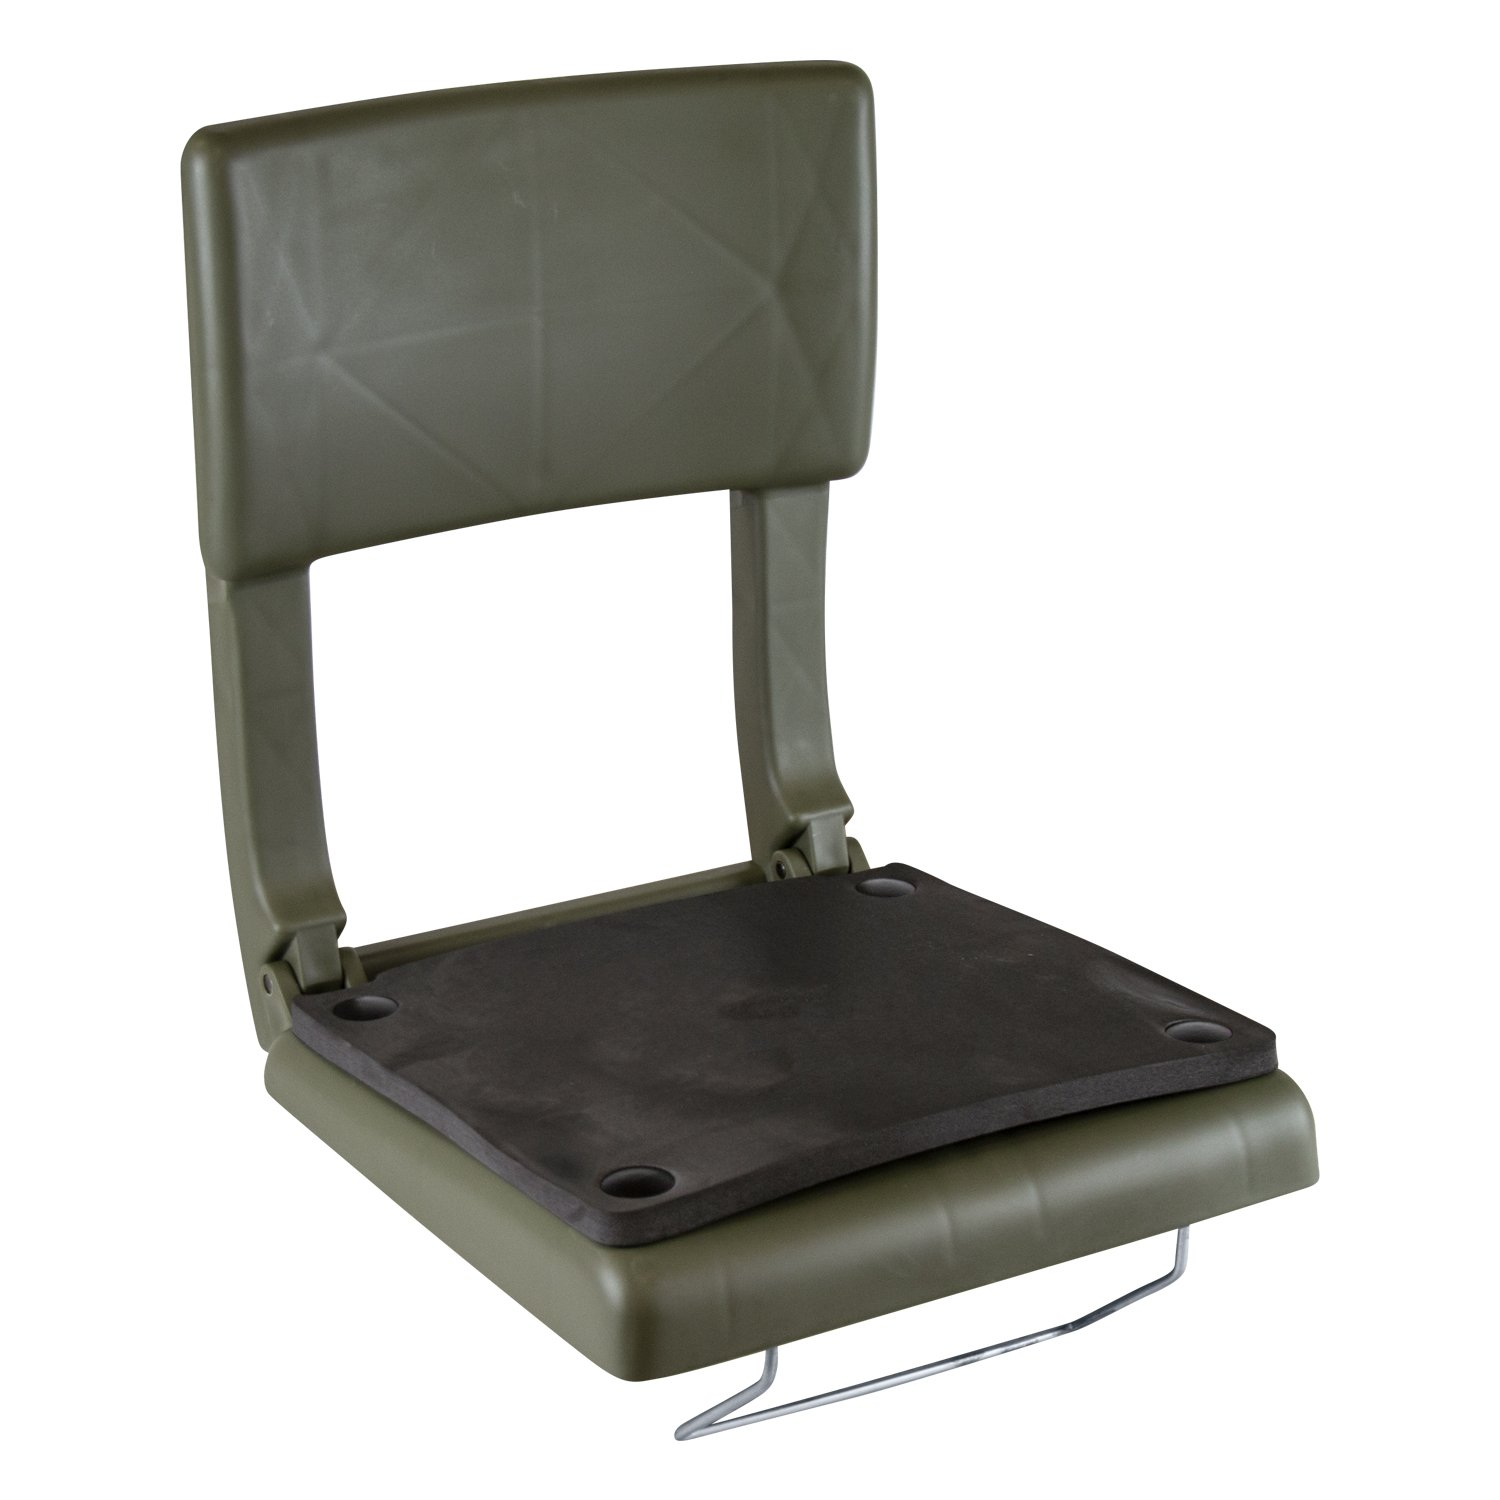 Wise 5410-940 Canoe Seat, OD Green The Wise Company